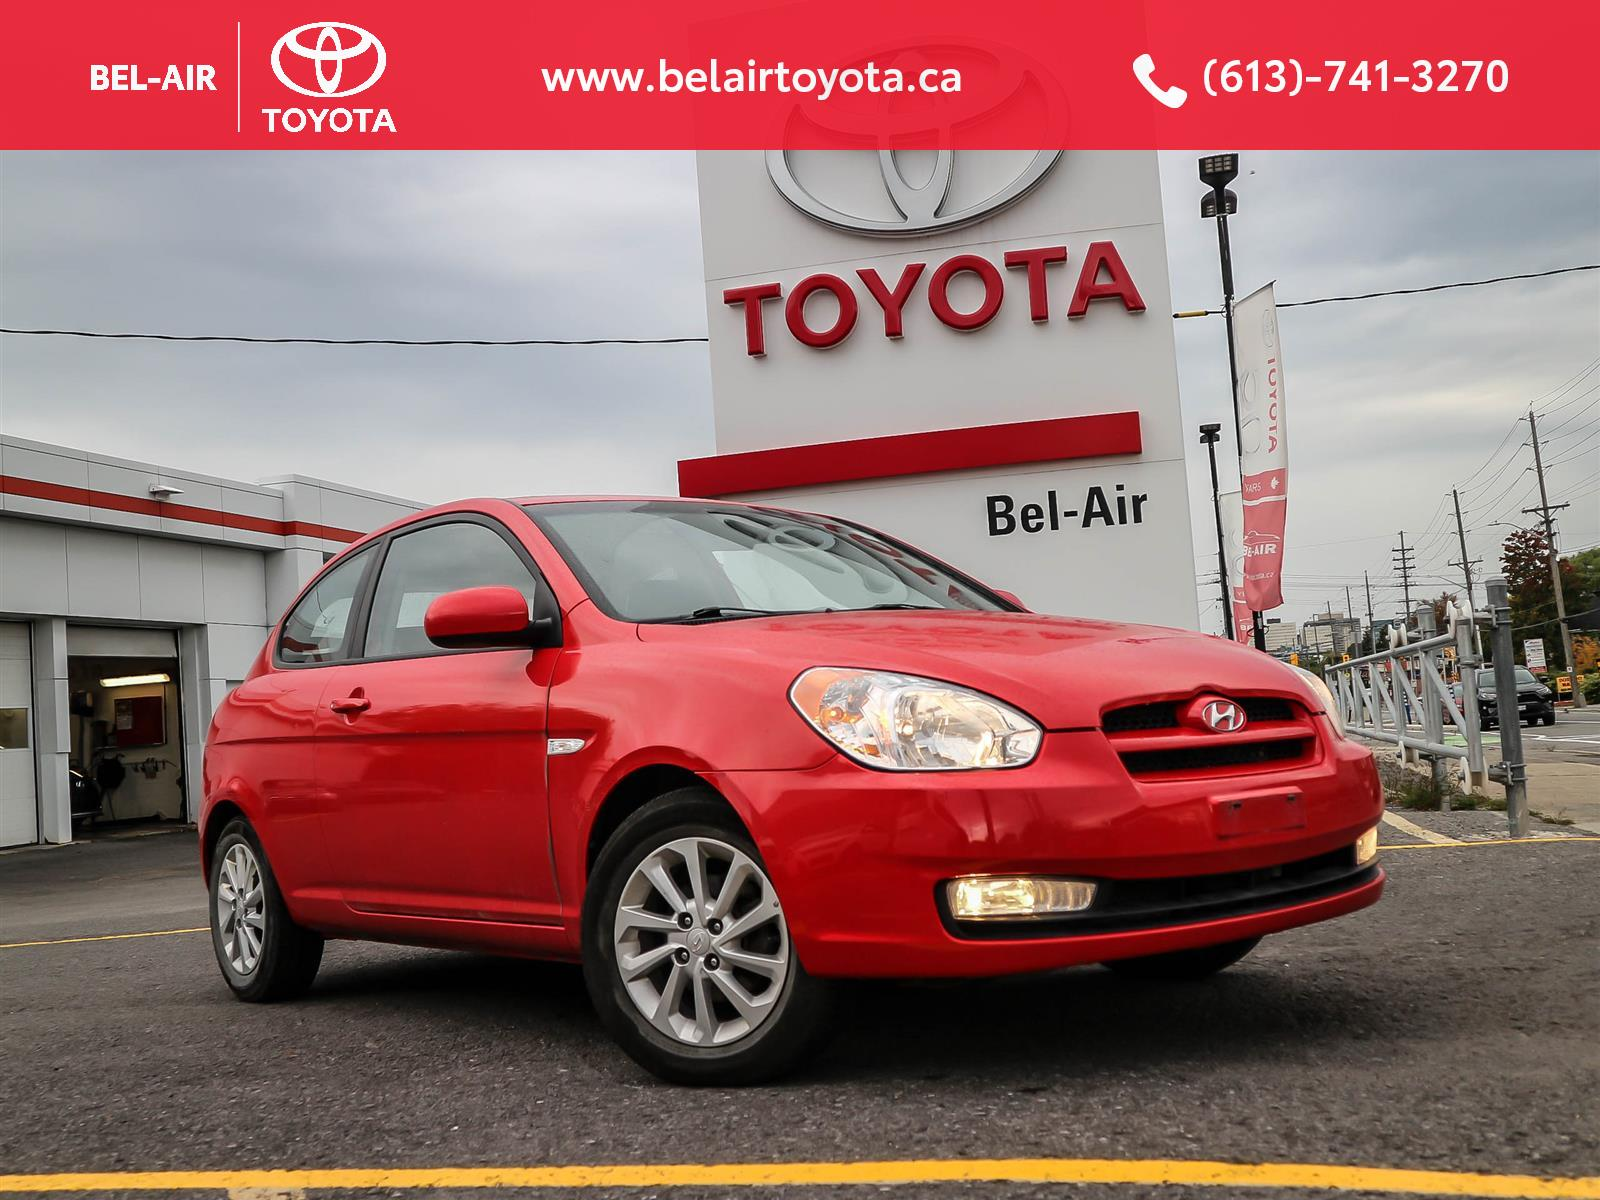 2010 Hyundai Accent at Orleans Toyota